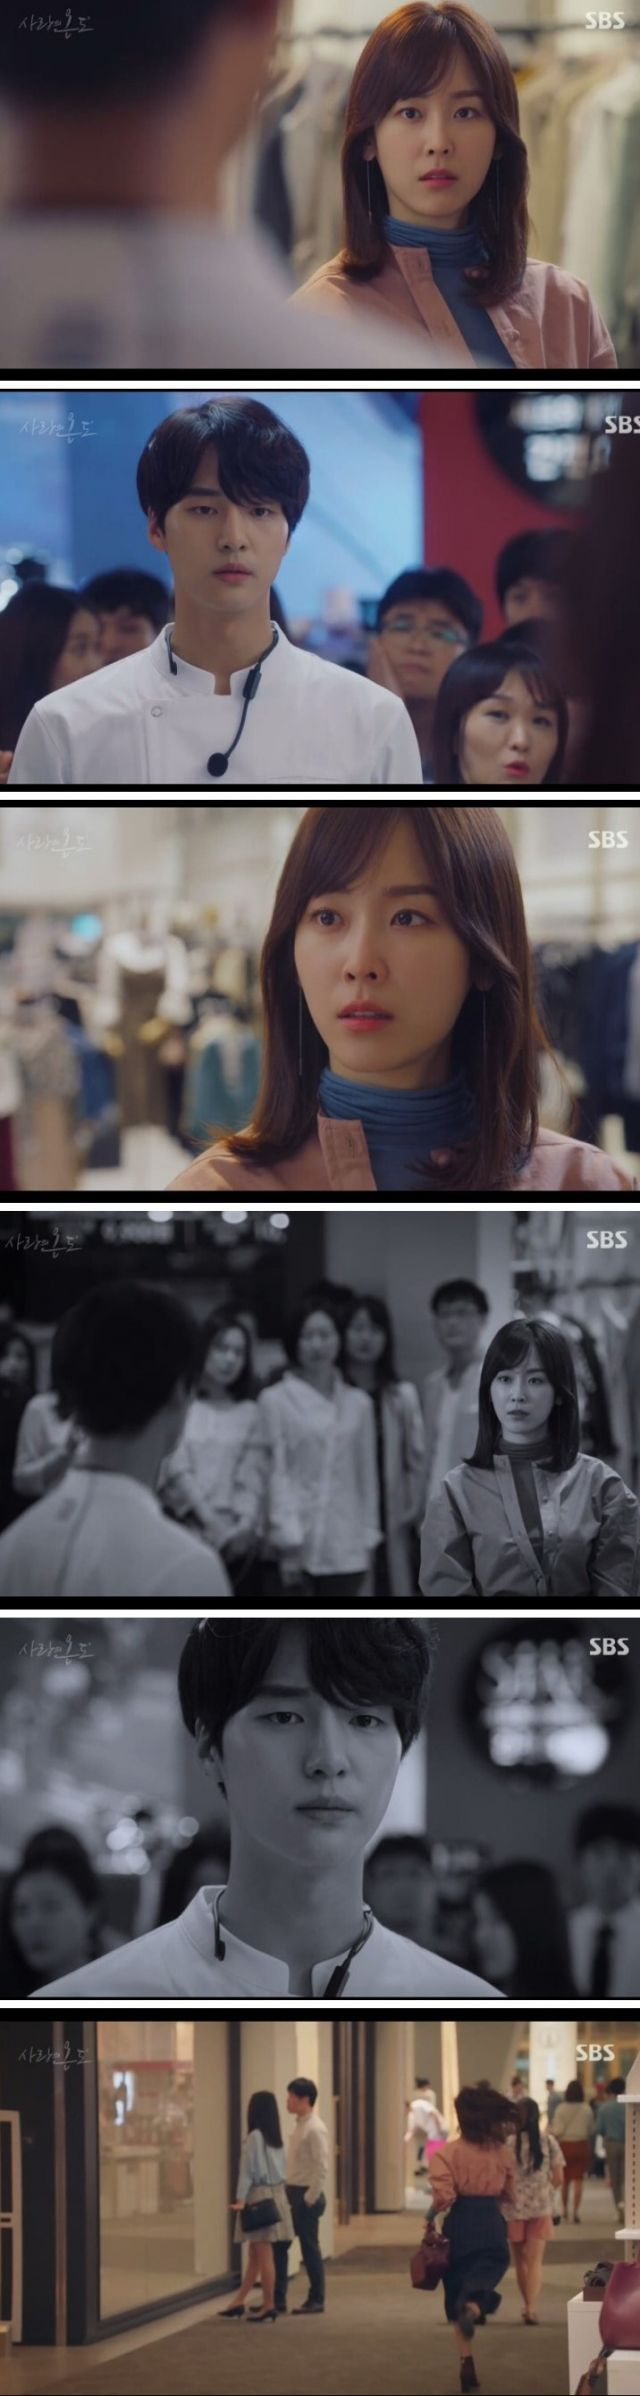 [Spoiler] Added episodes 7 and 8 captures for the Korean drama 'The Temperature of Love'